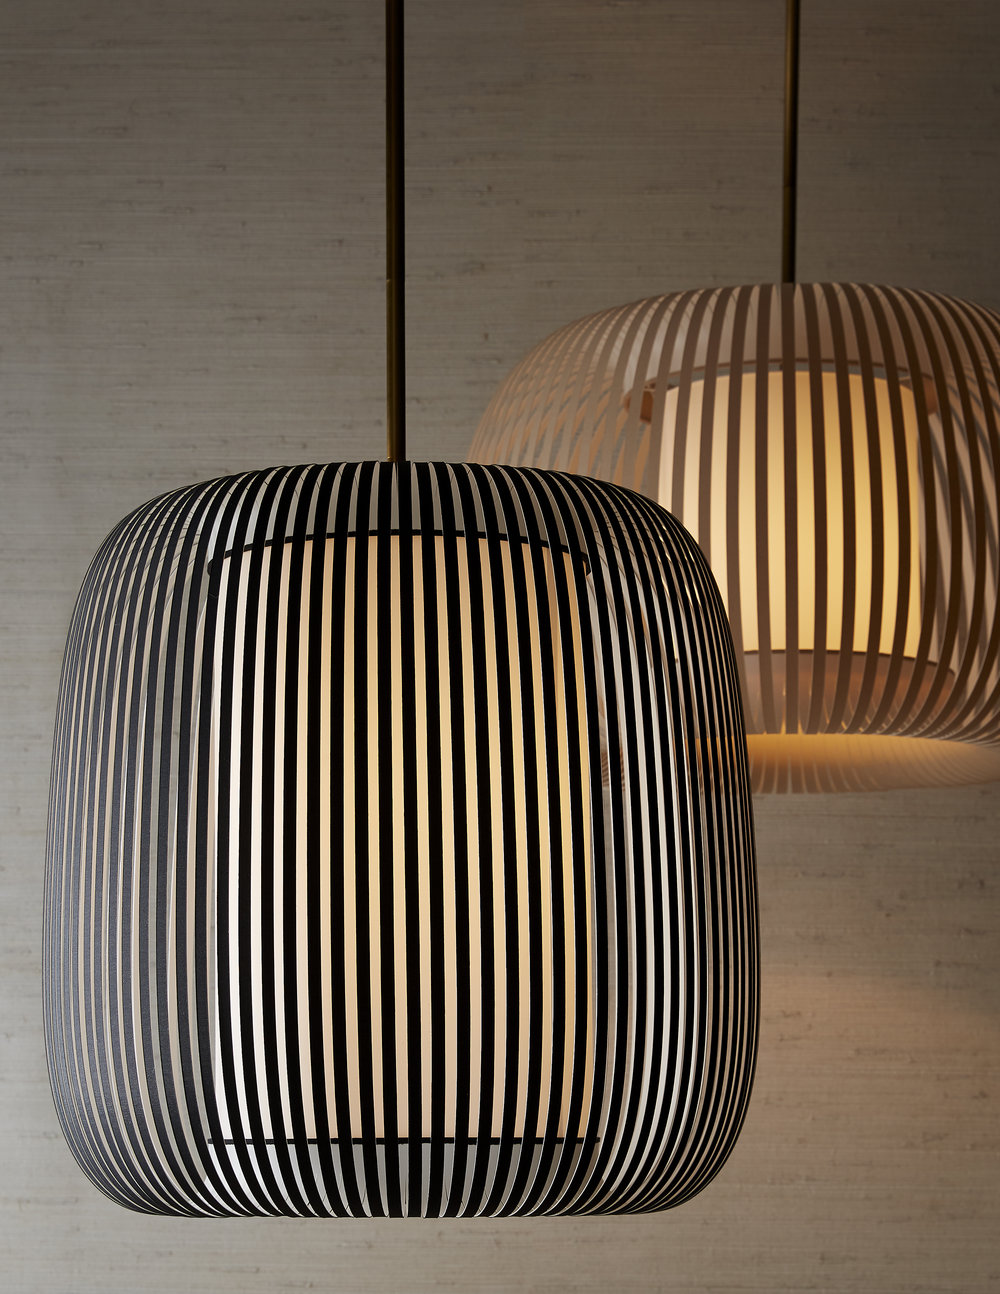 Mia Pendant - Like a magnetic field surrounding the central lantern, almost 100 strips of upholstered banding are made to create each of these pendants. These pendants manage to be both sturdy and lend an open, airy feel to any space they're installed.